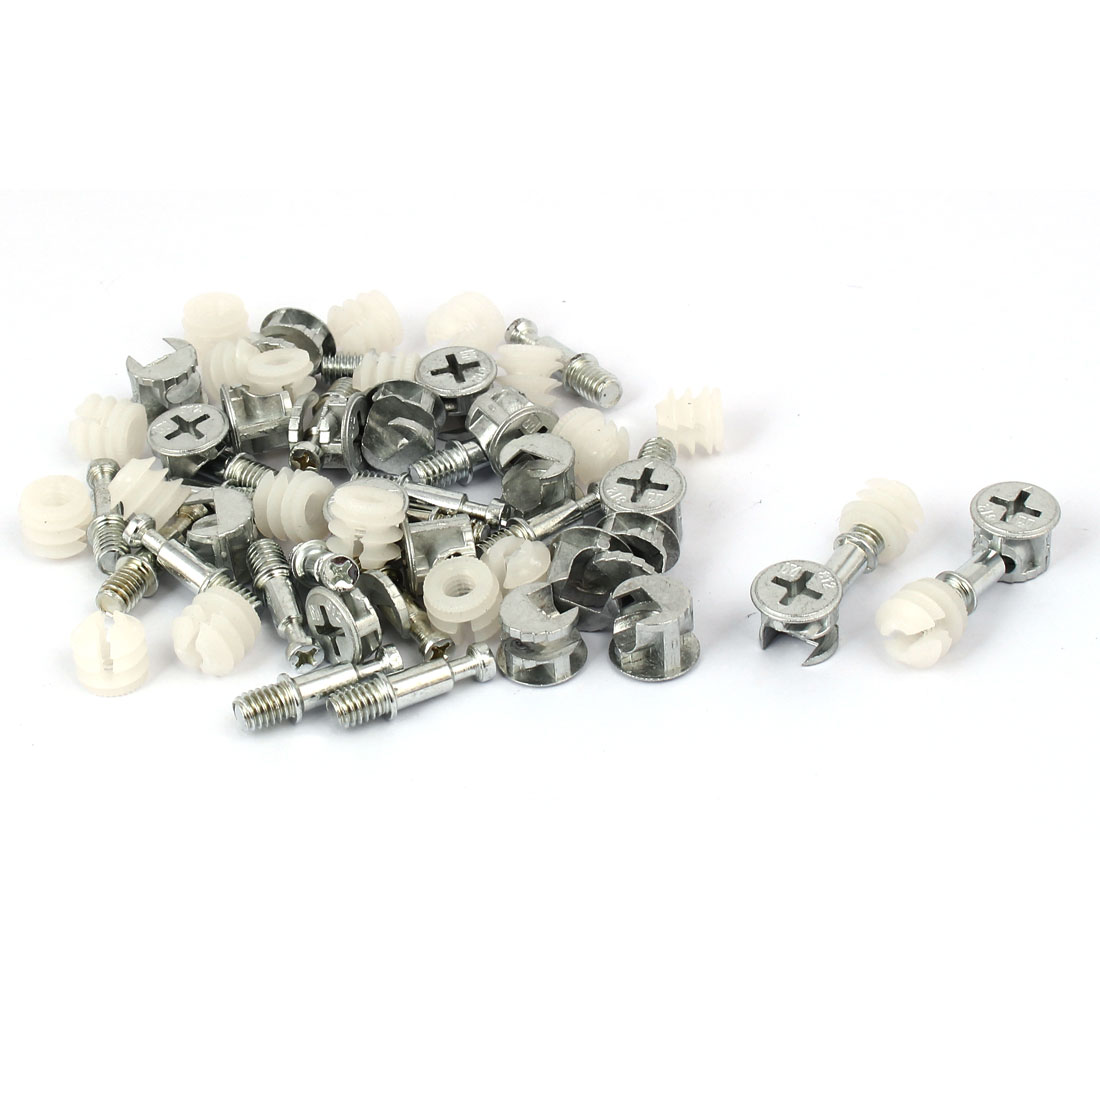 Knock Down Furniture Cam Lock Connecting Fitting Dowel Nut Assembly 20 Sets